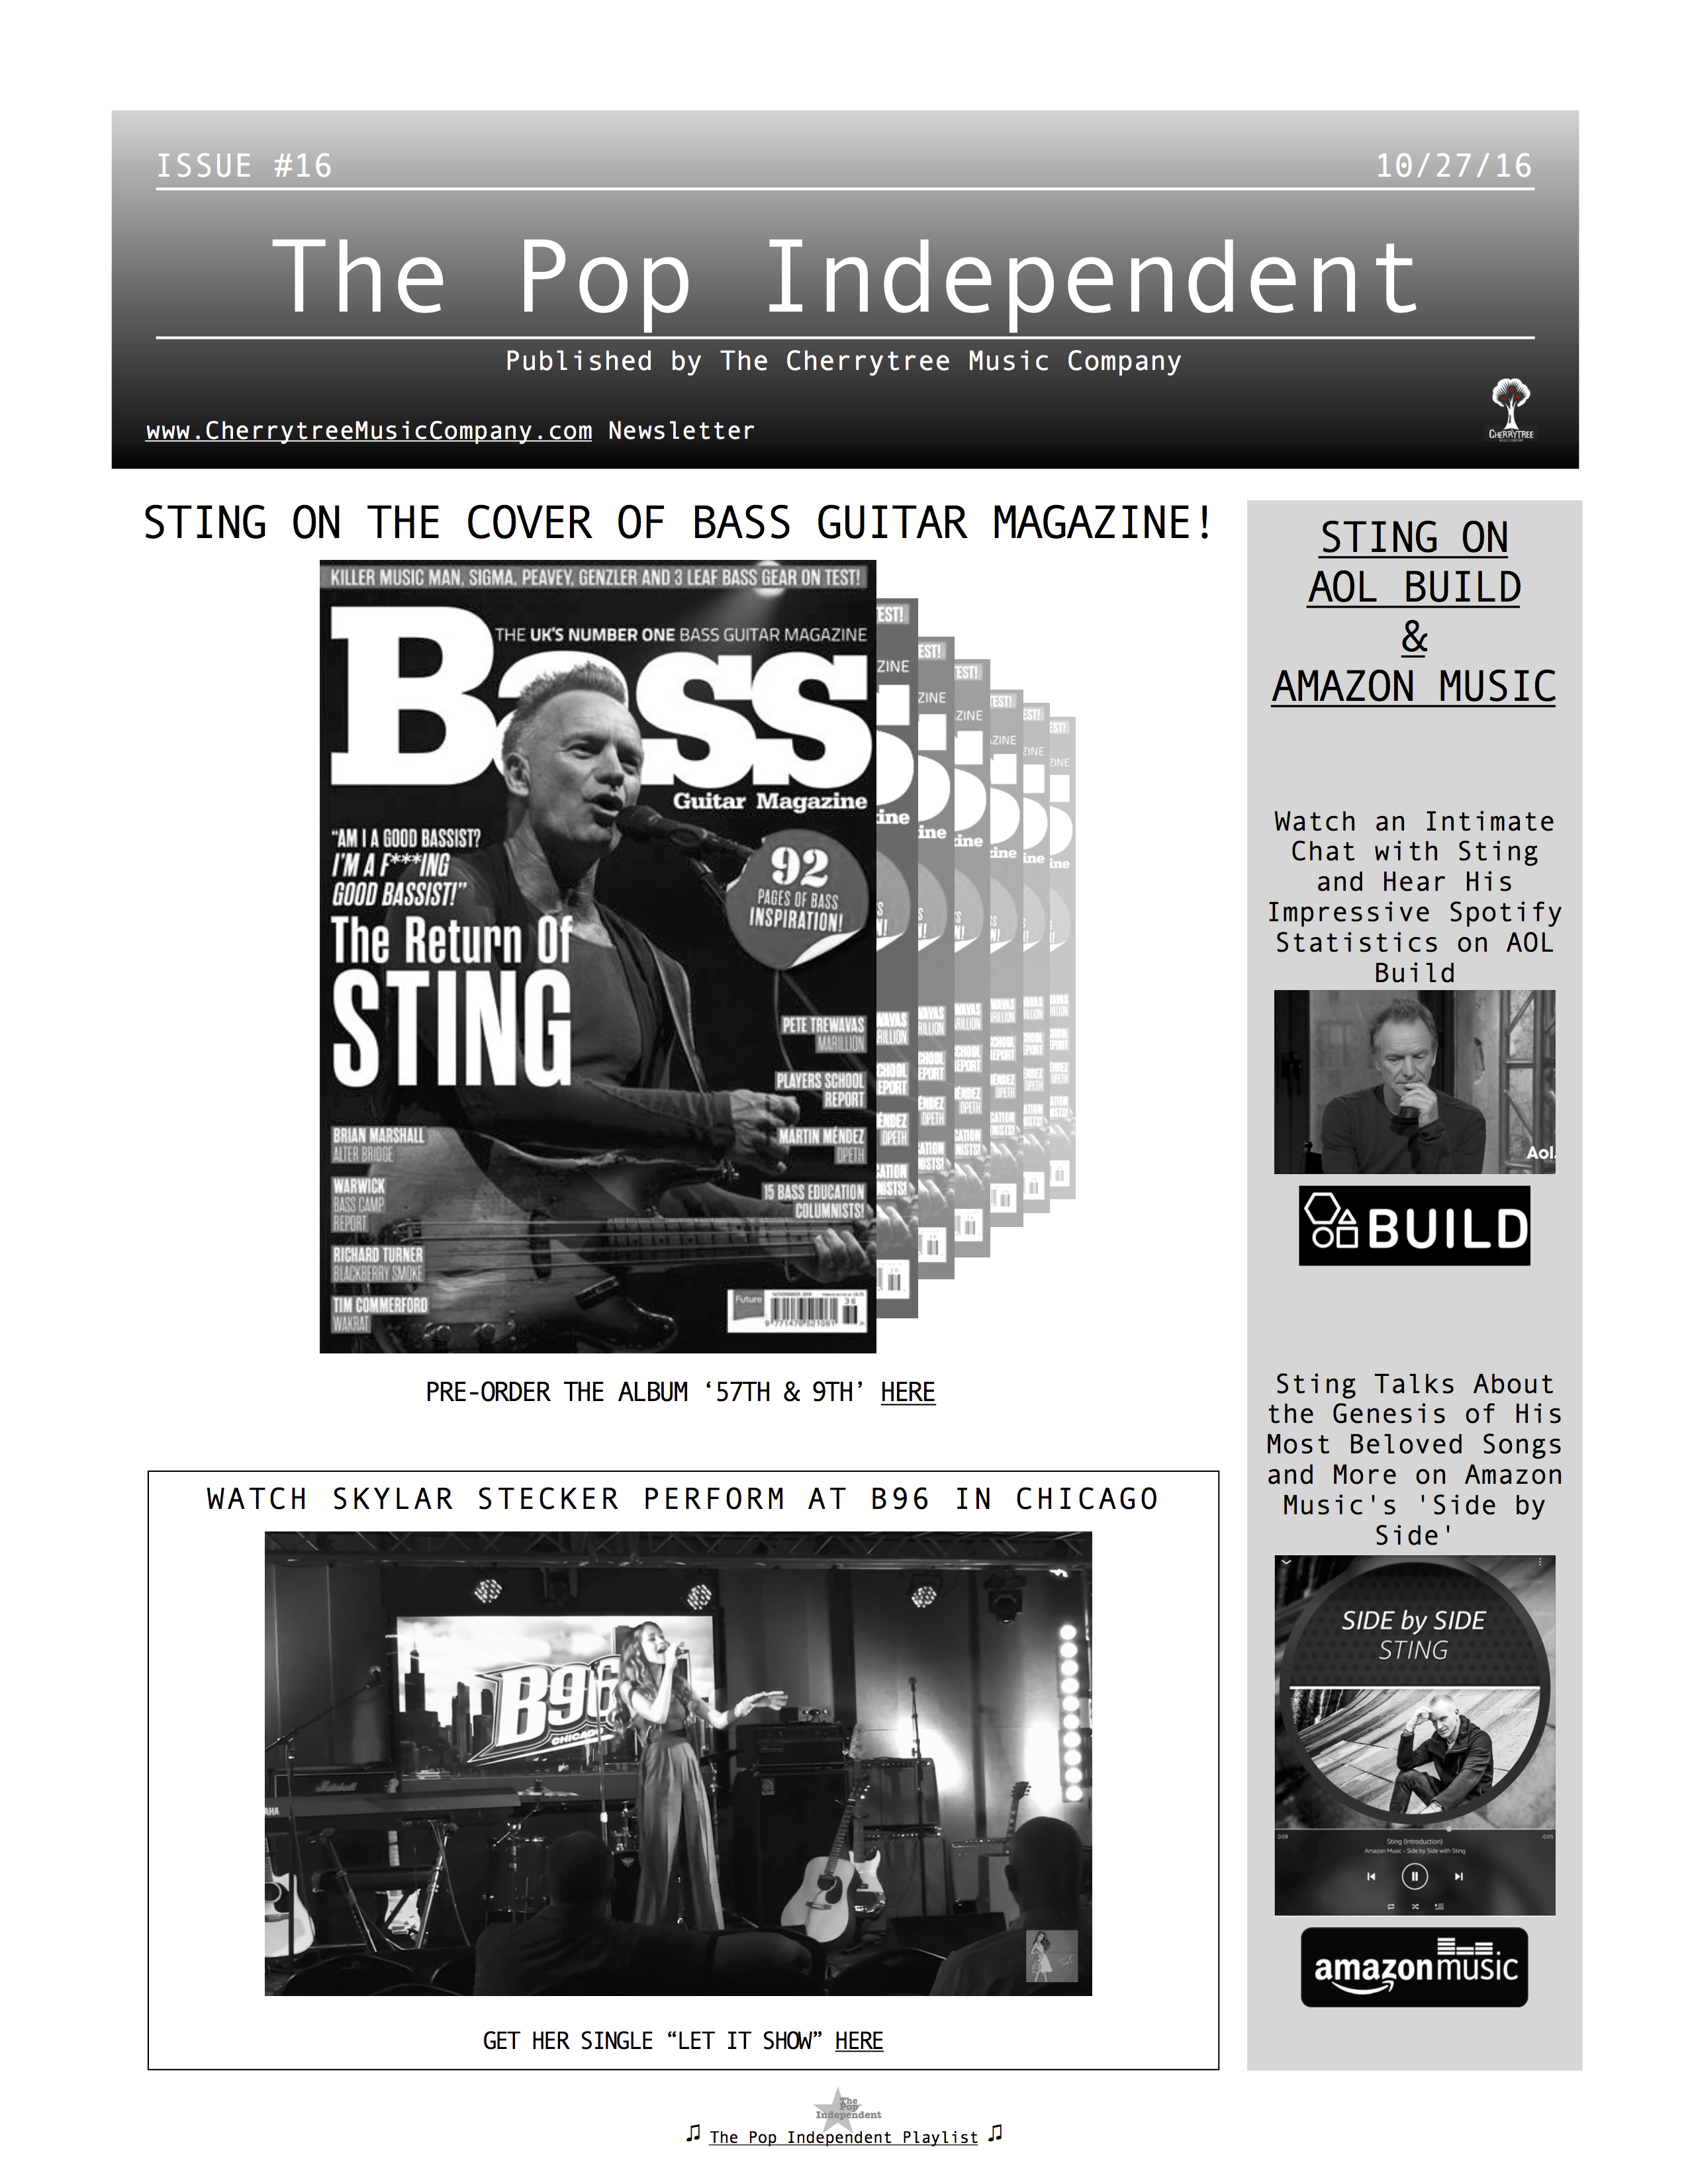 The Pop Independent, issue 16